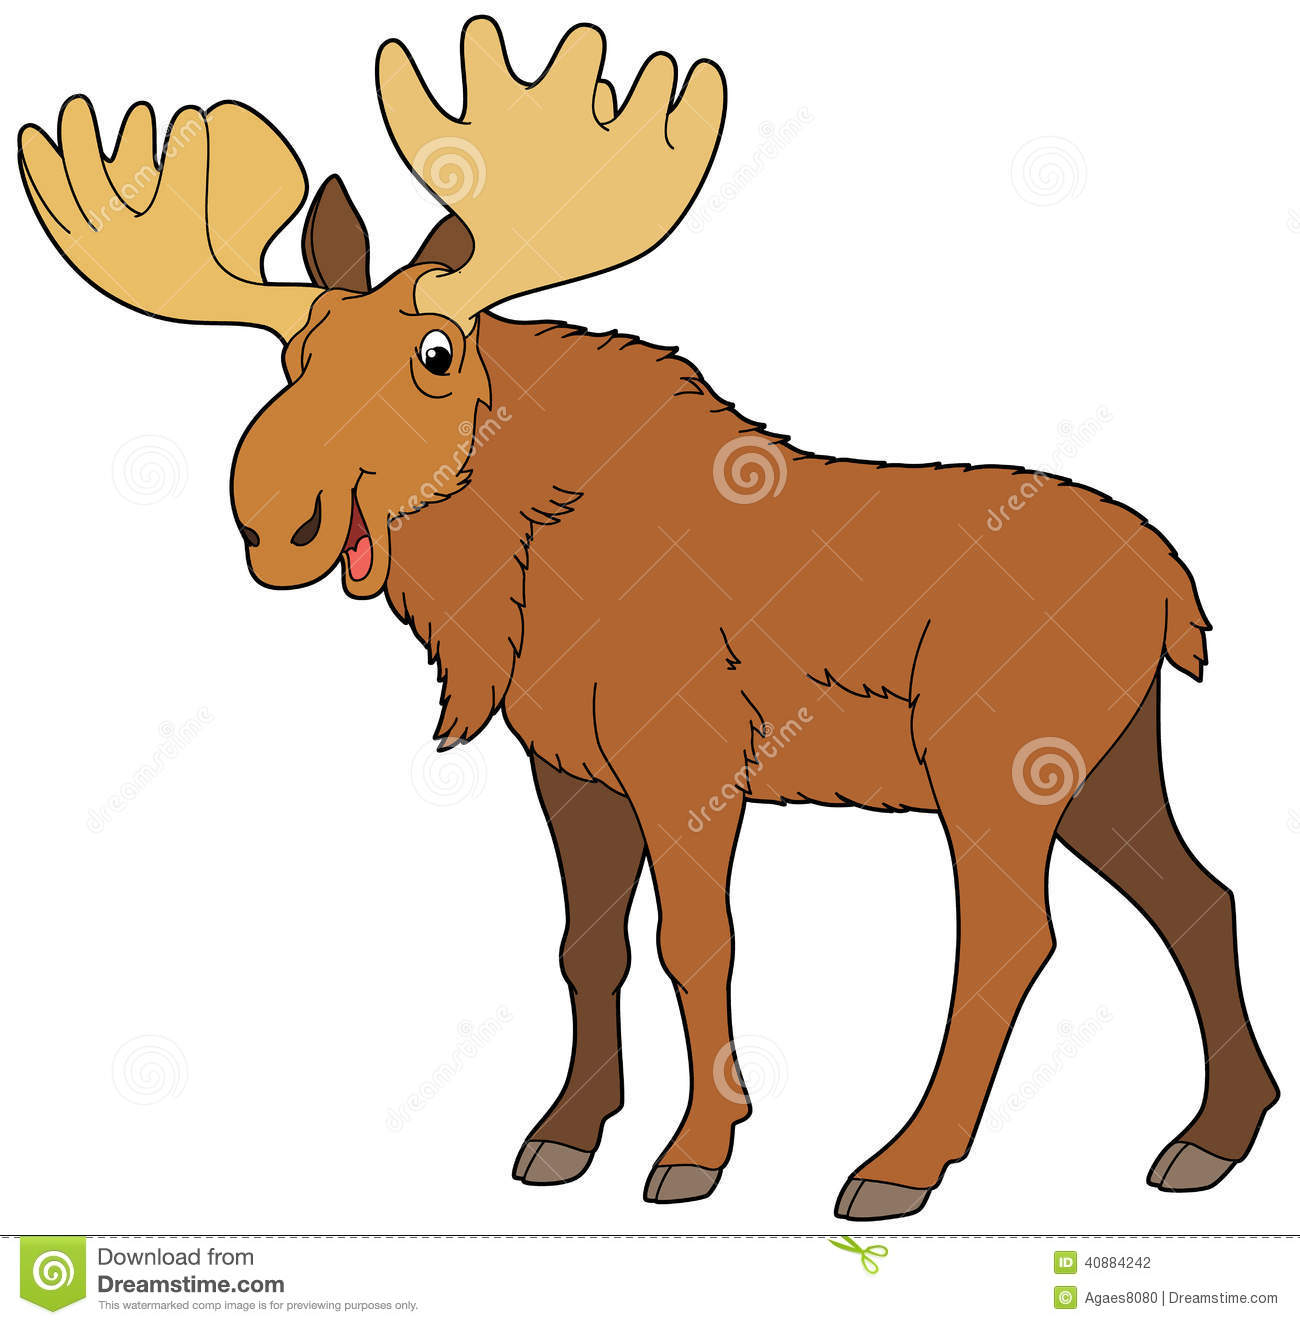 ... Illustration: Cartoon animal - moose - illustration for the children